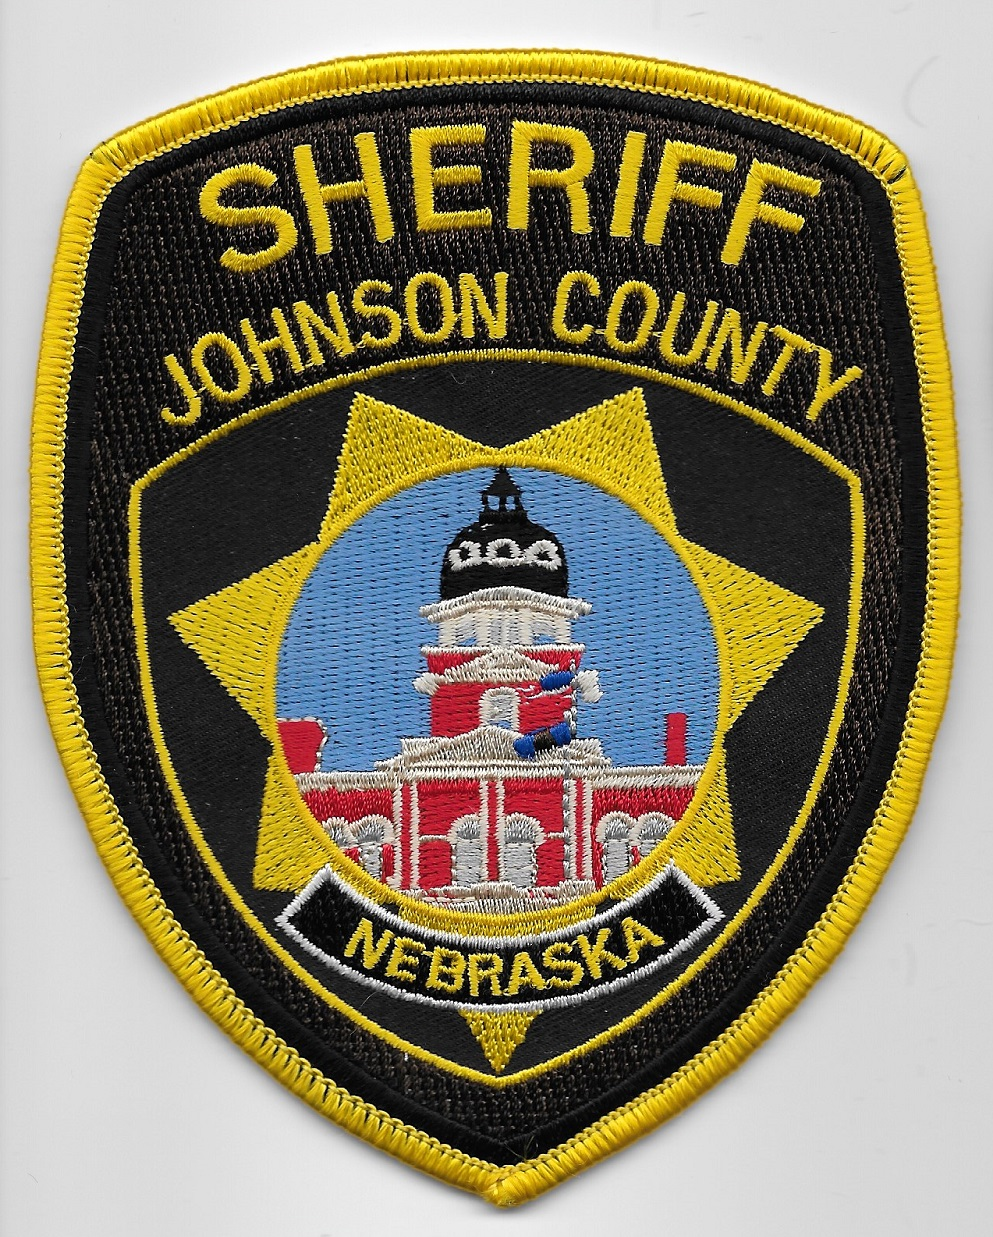 Johnson County Sheriff NE